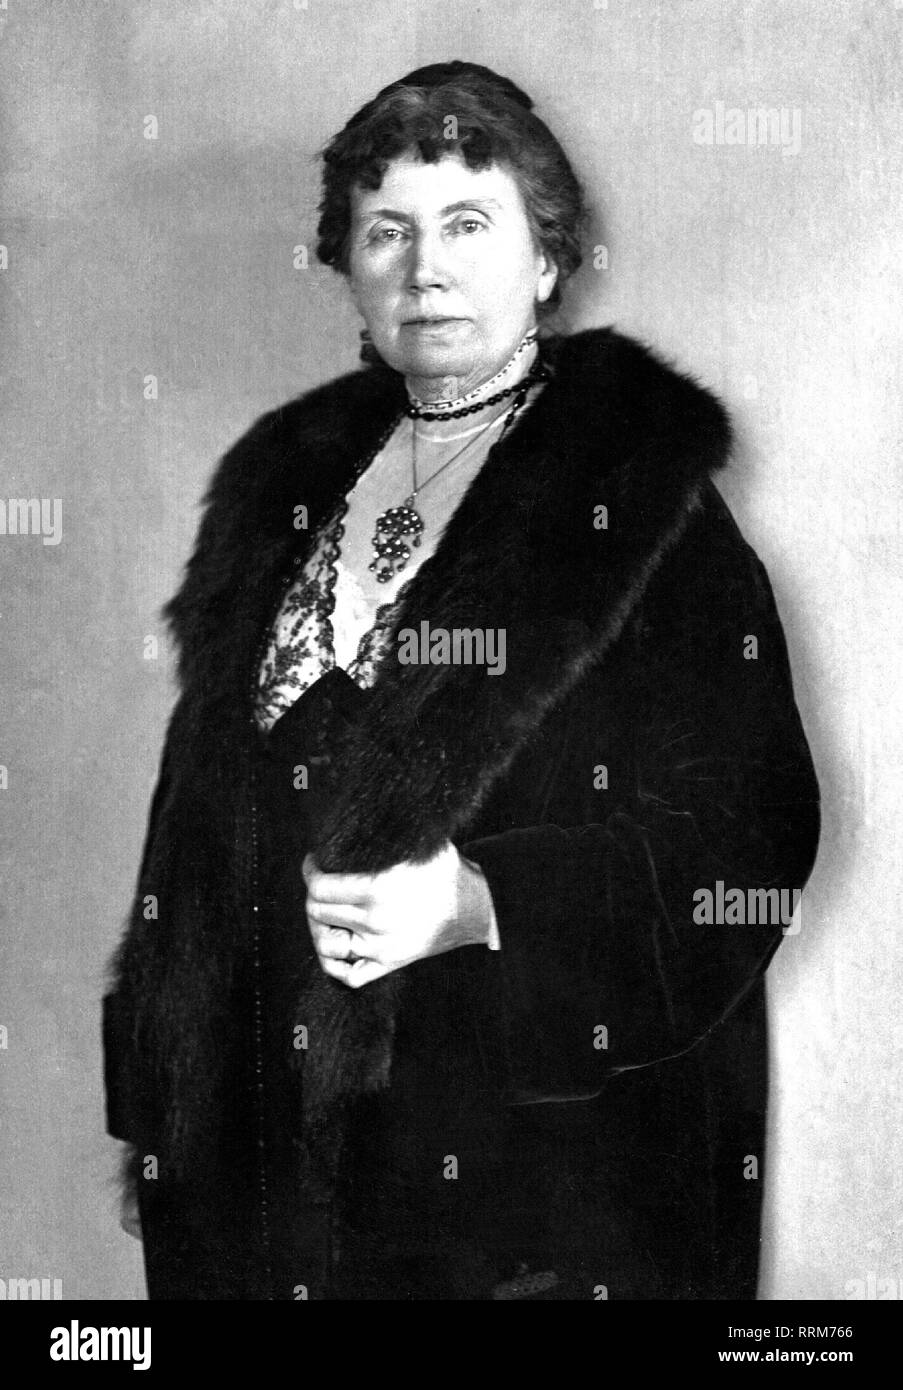 Kurz, Isolde, 21.12.1853 - 5.4.1944, German author / writer, half length,, Additional-Rights-Clearance-Info-Not-Available - Stock Image